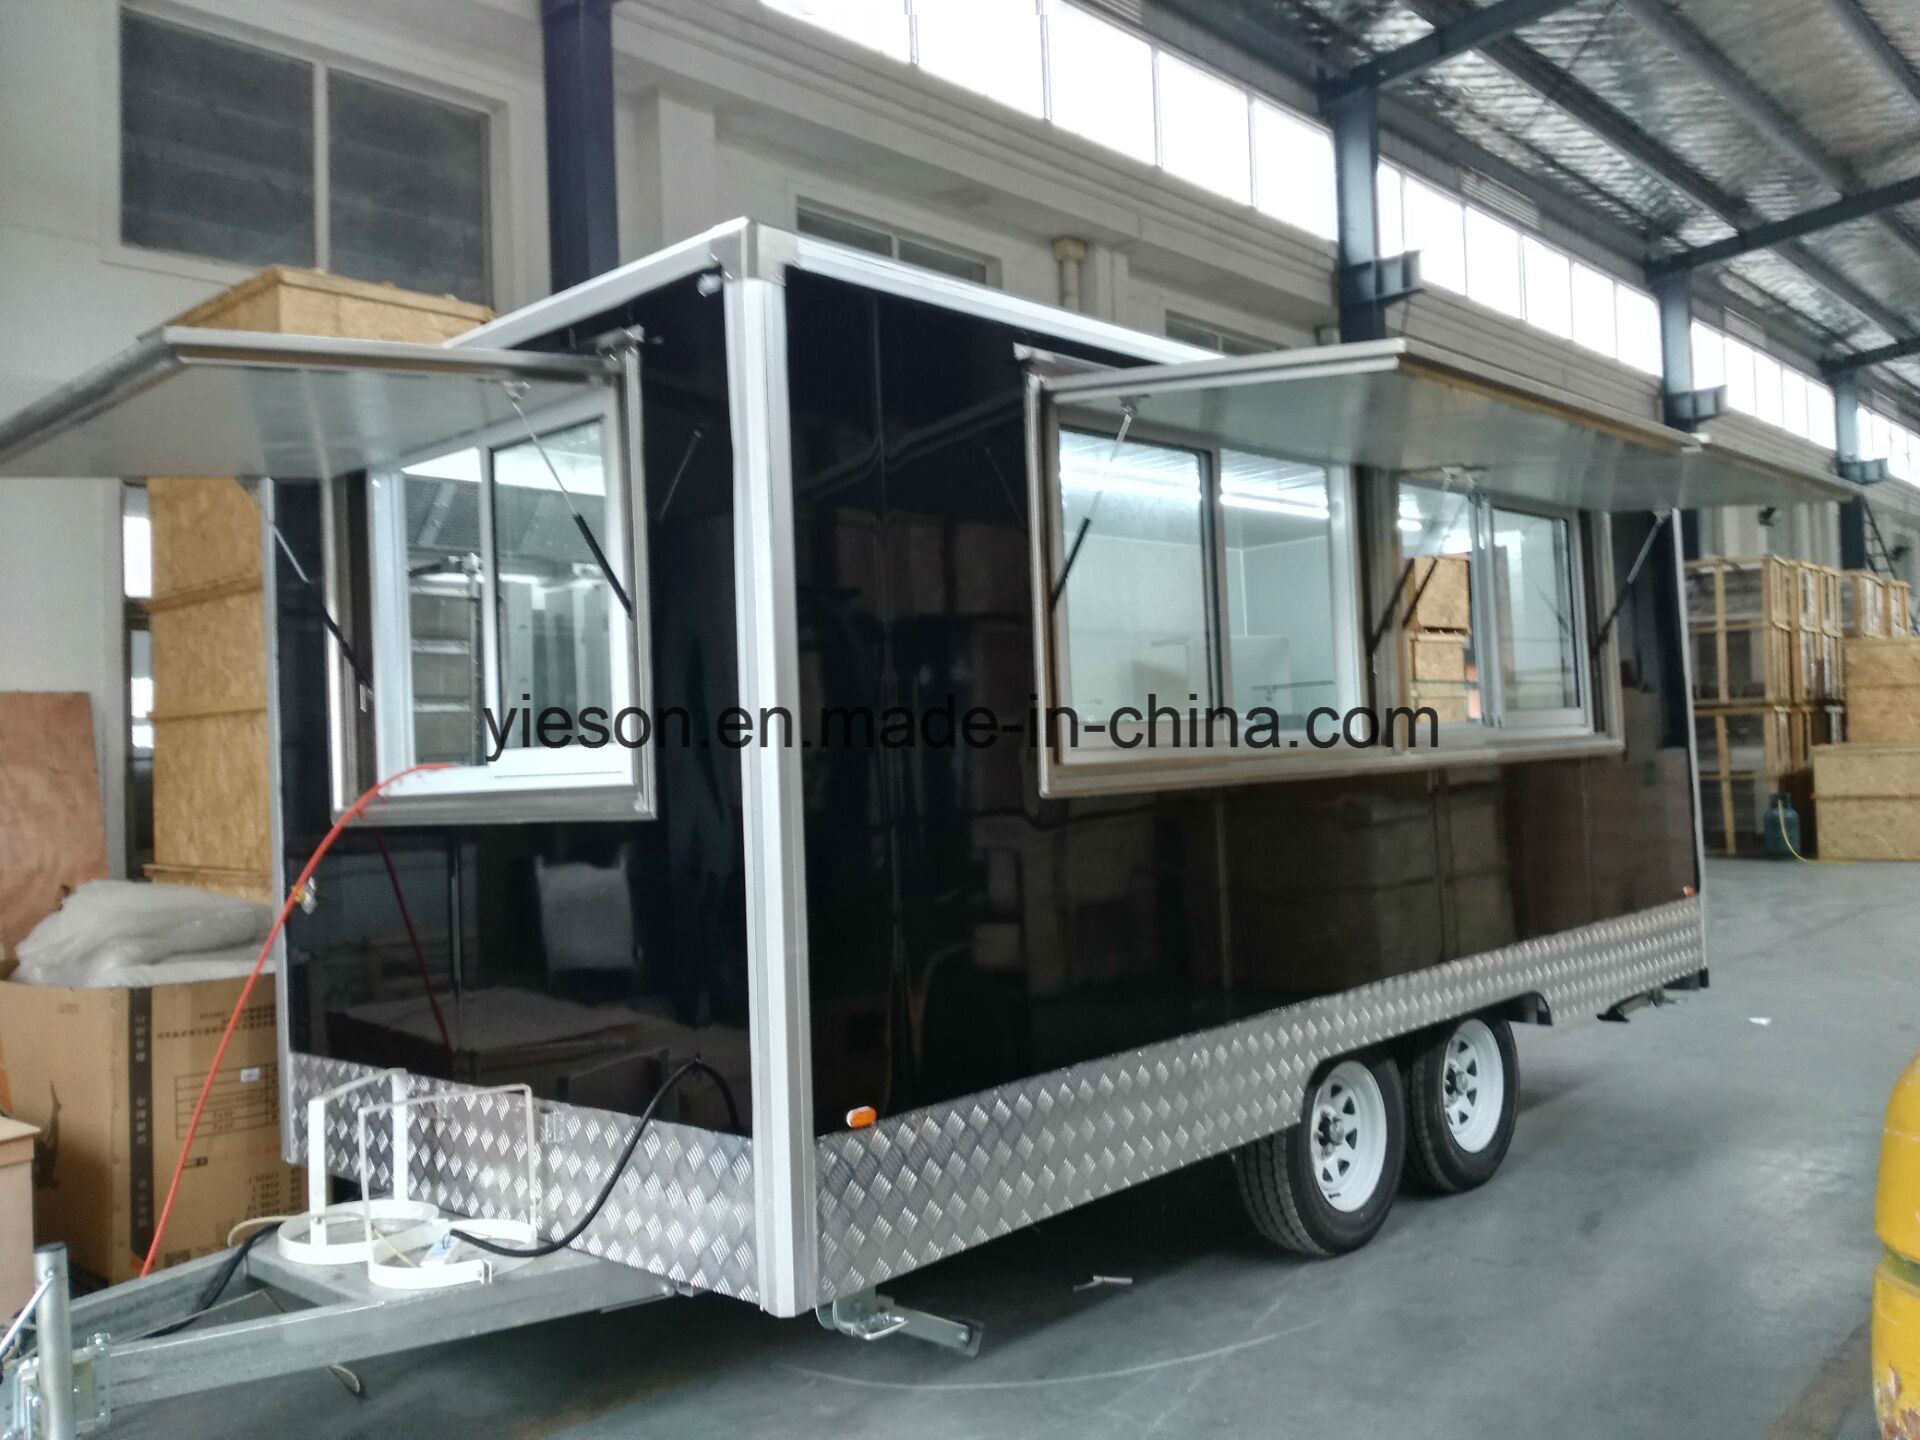 Sliding Glass Windows Mobile Kebab Van